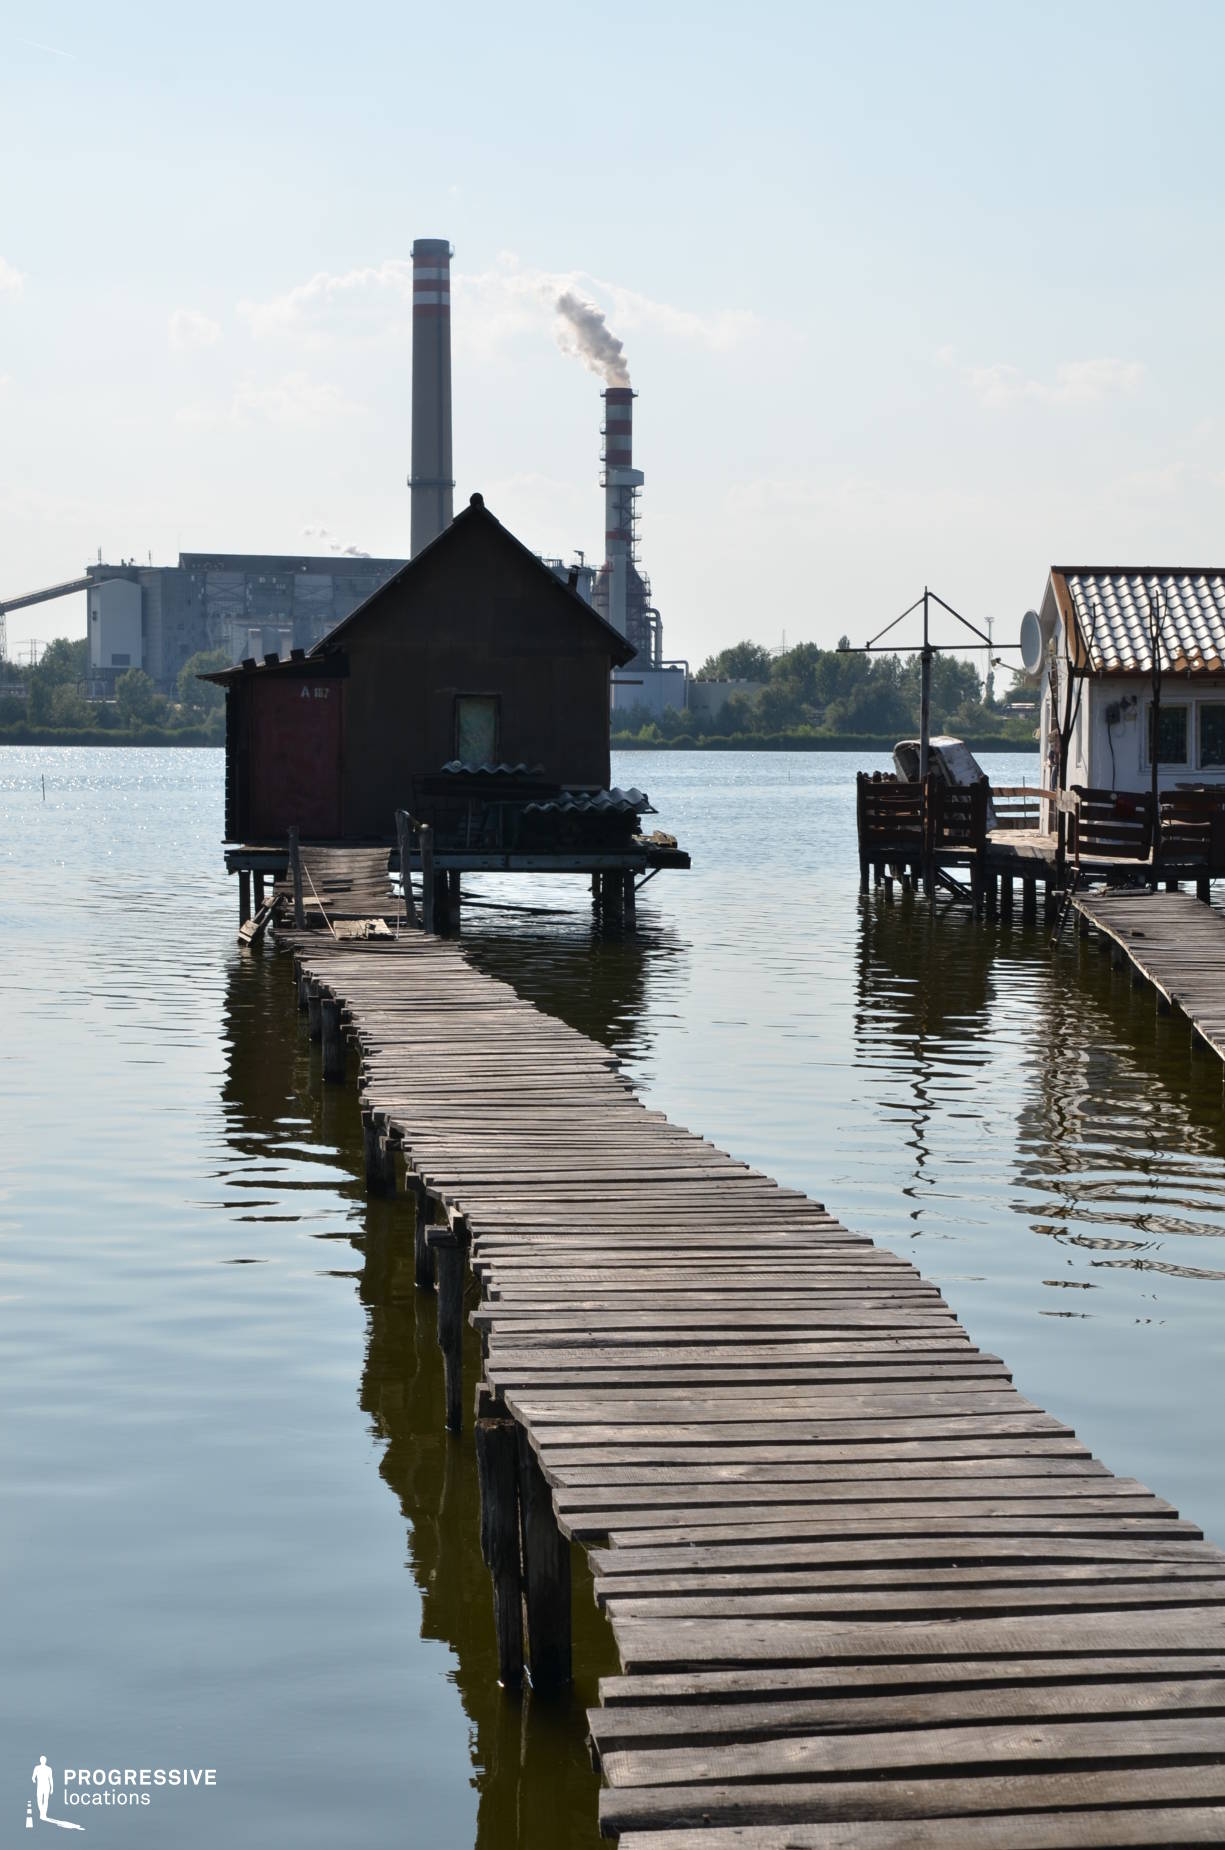 Locations in Hungary: Pier %26 Wooden House %26 Chimney, Lake Bokod